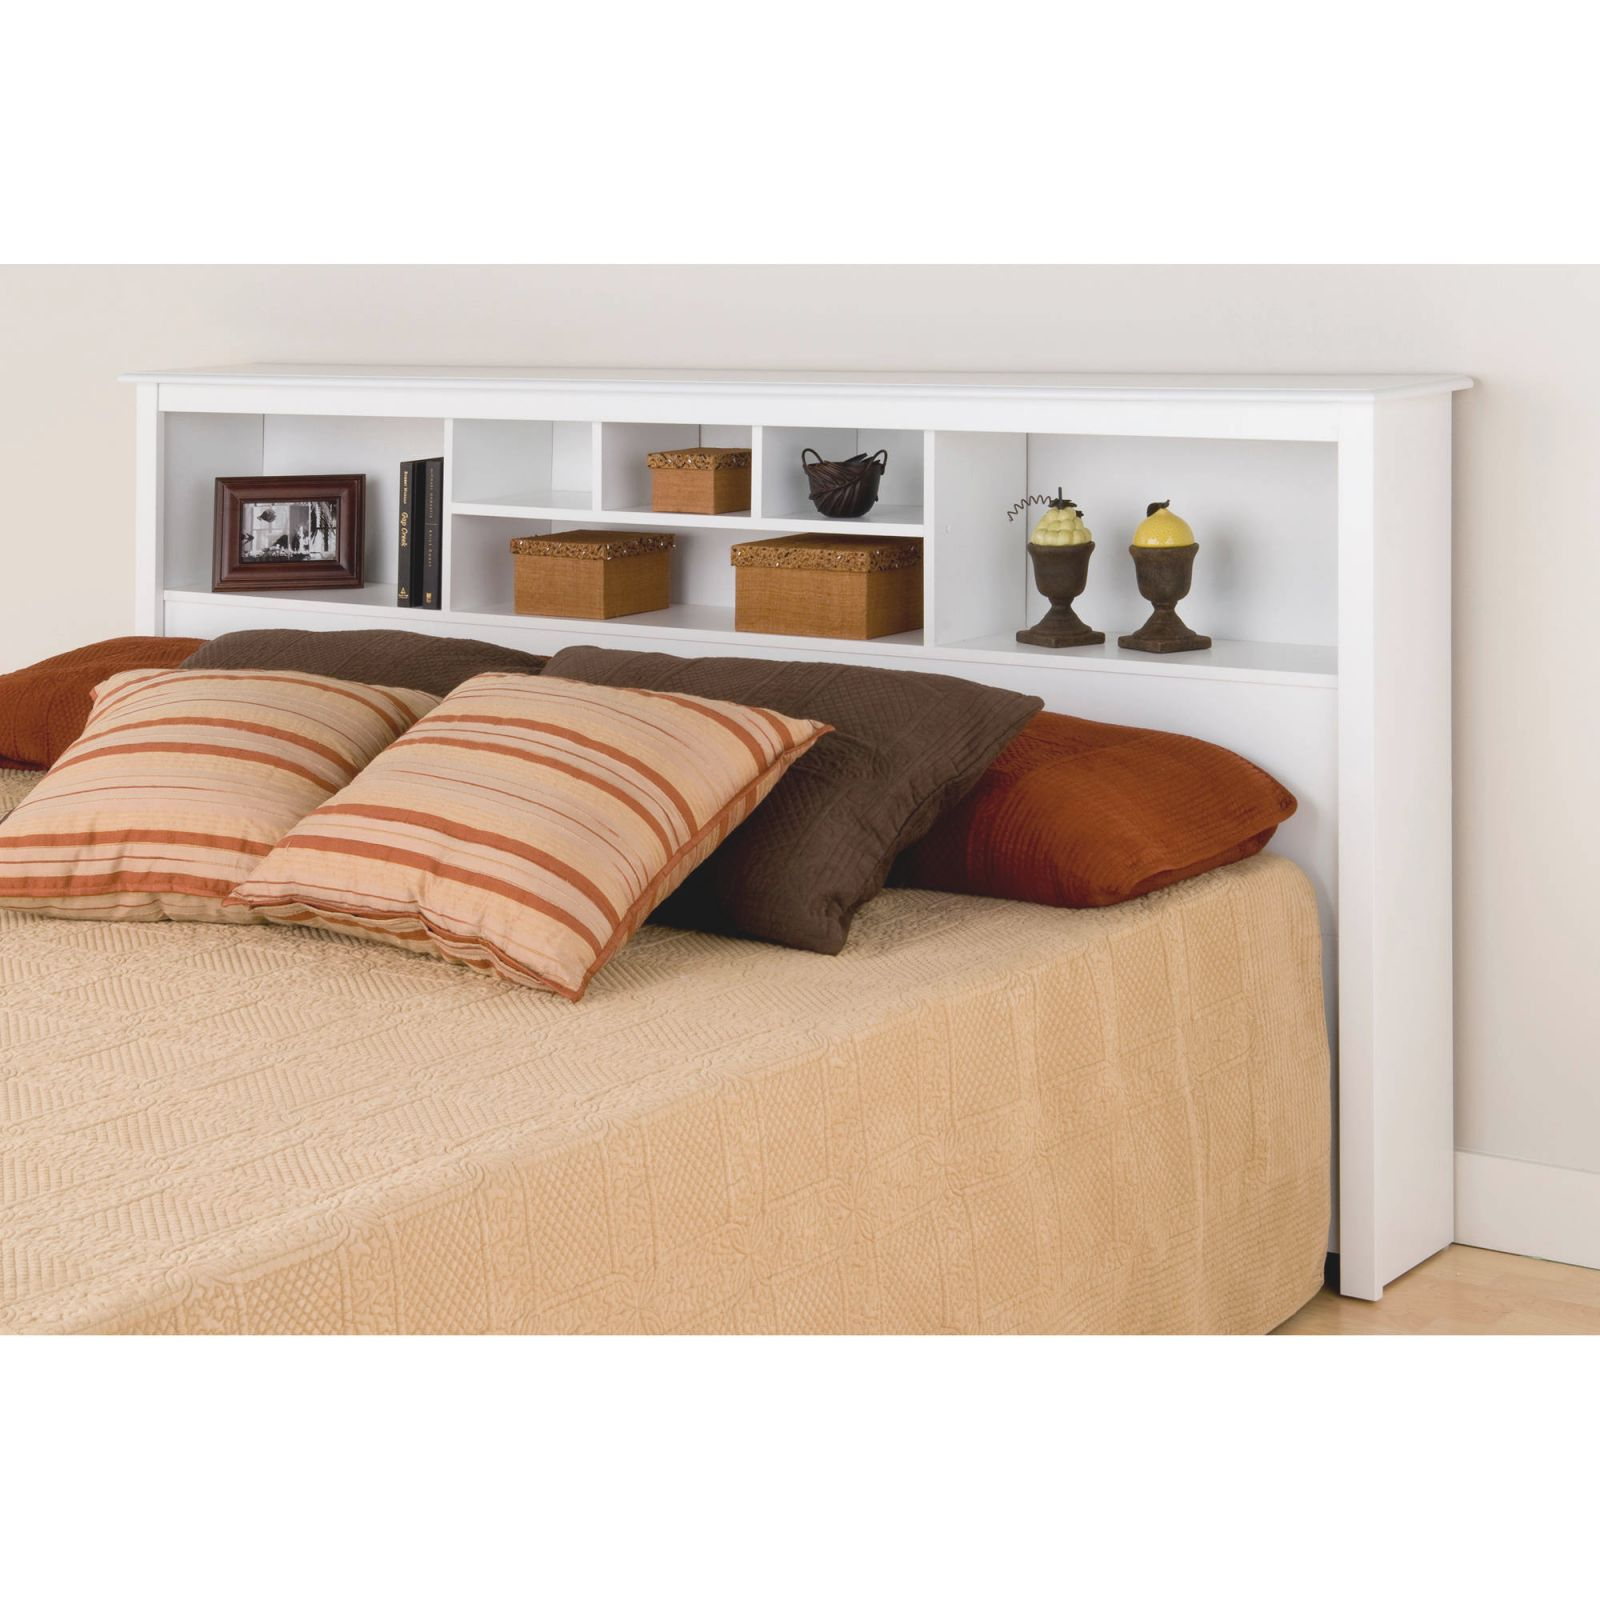 Prepac Manufacturing King Size Bookcase Headboard throughout Best of King Bed Frame With Headboard